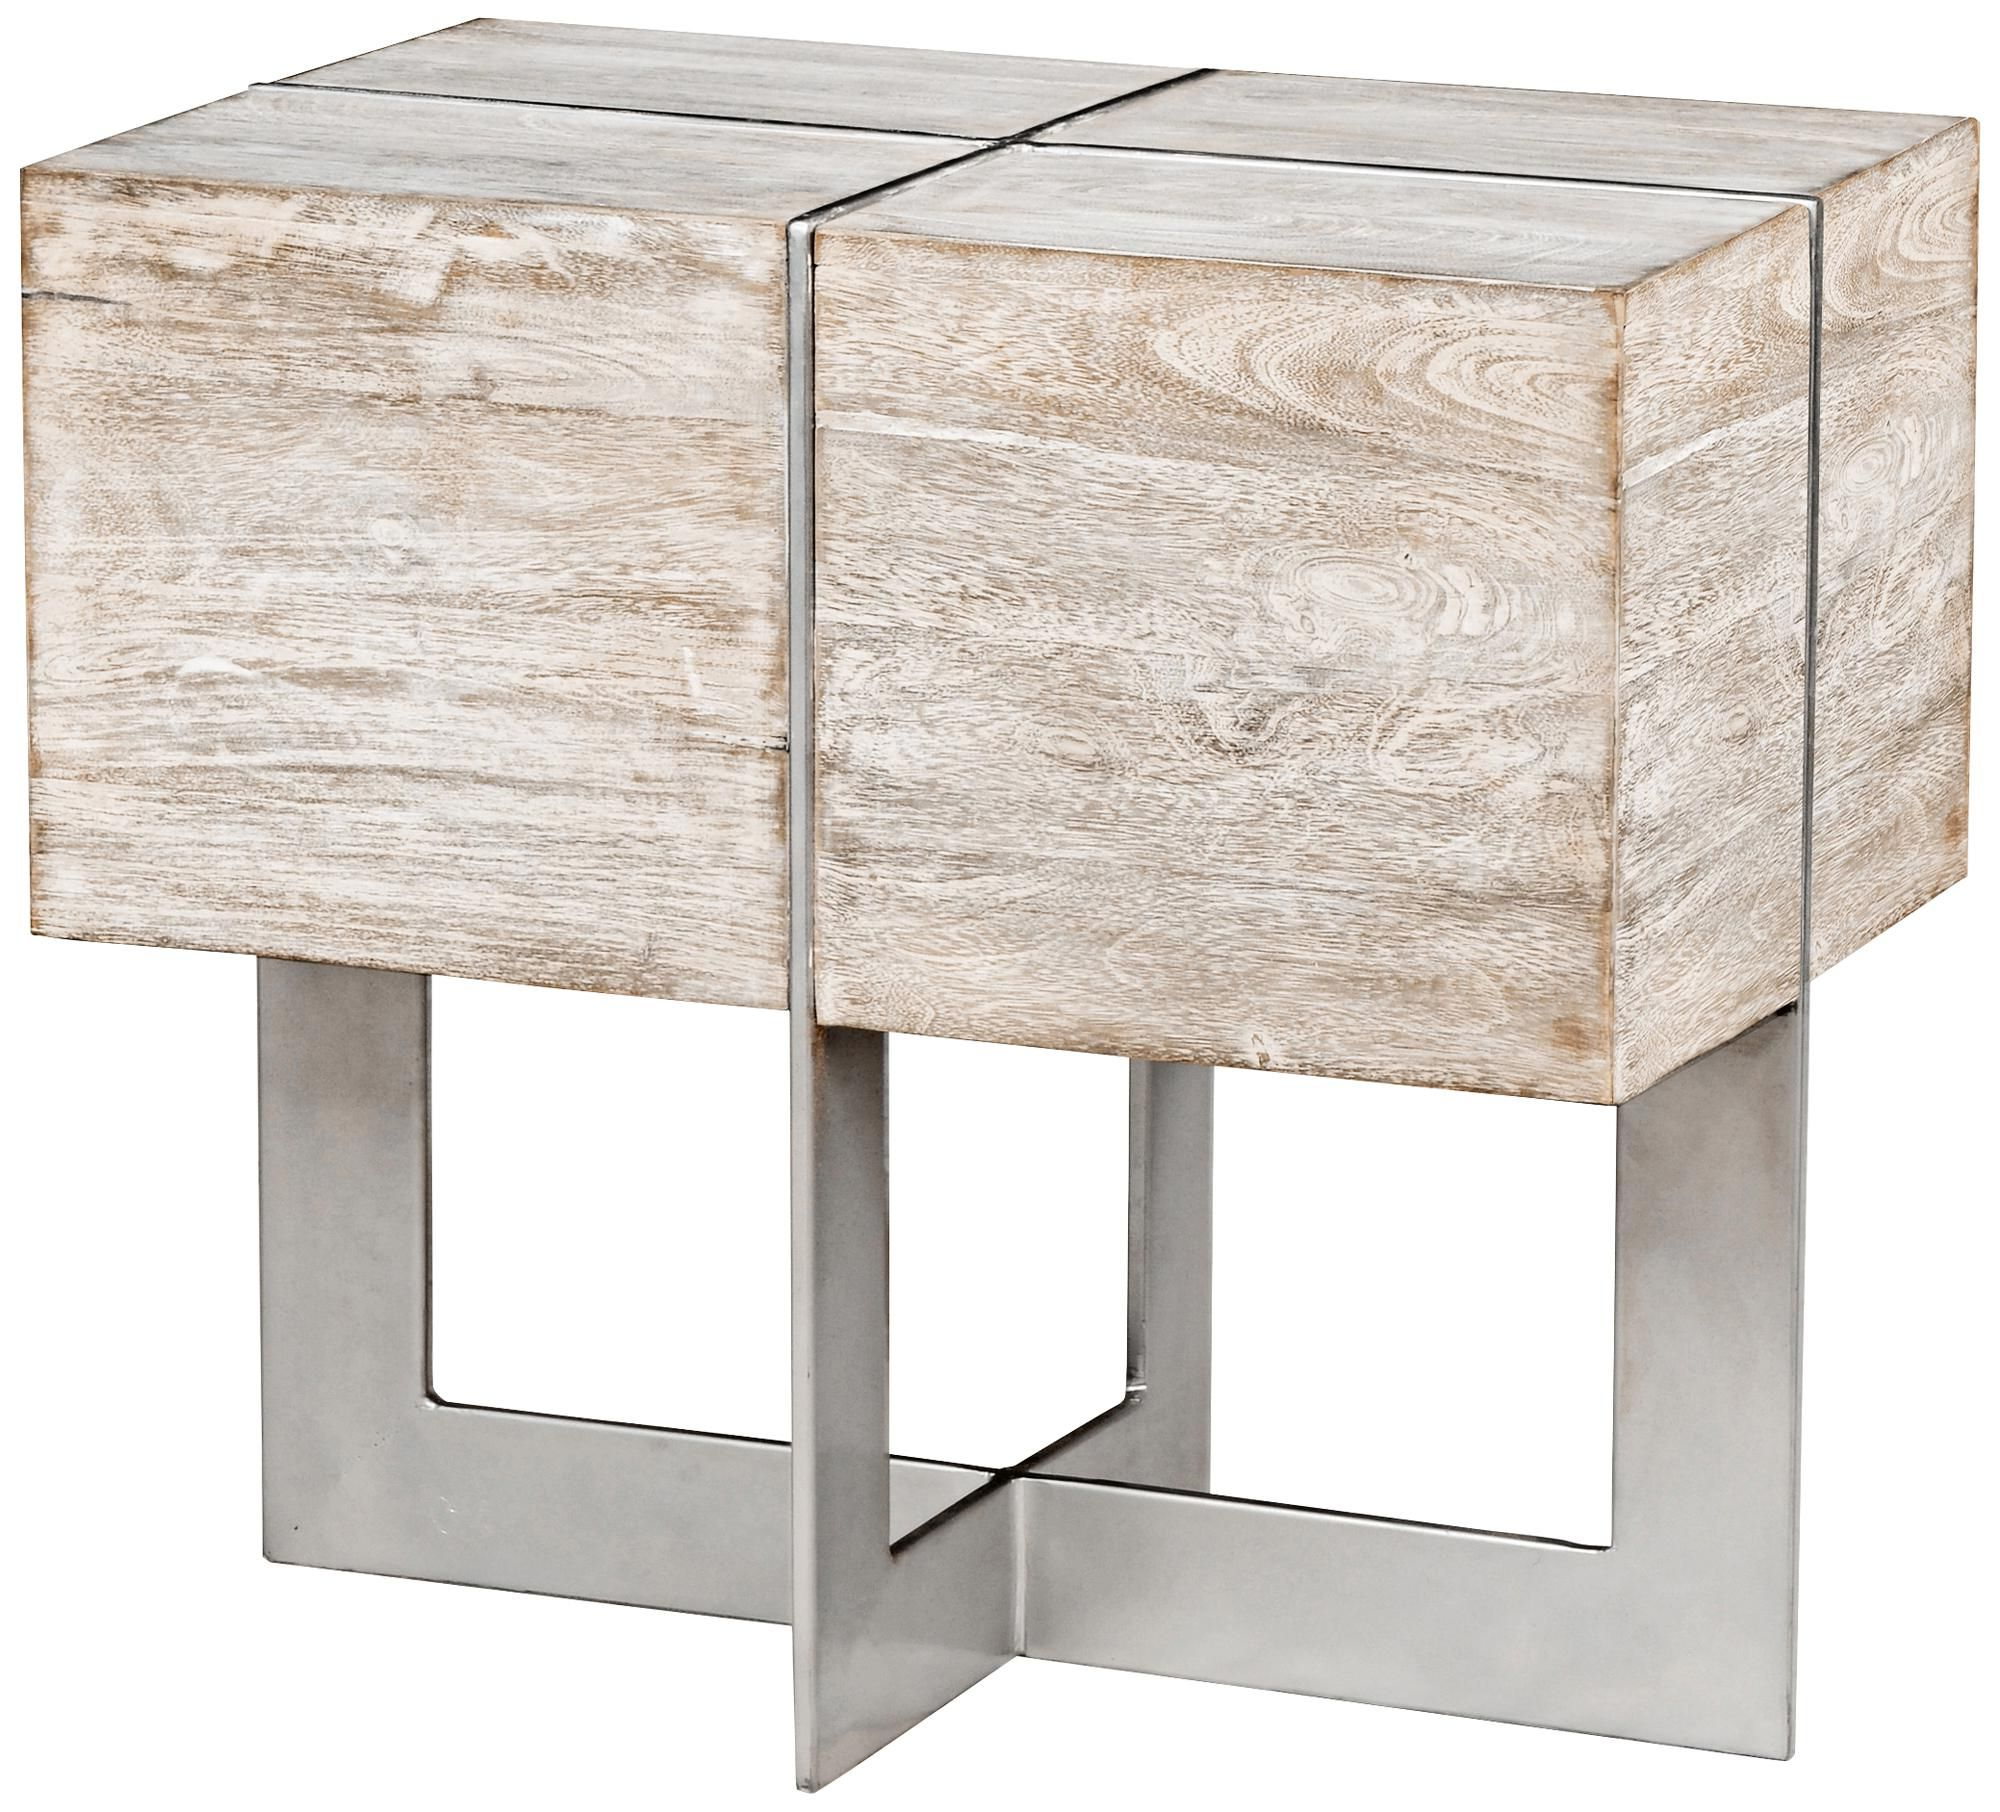 Desmond White Wash Solid Mango Wood Block End Table | Home Accents With Parsons Grey Marble Top & Dark Steel Base 48X16 Console Tables (View 4 of 20)